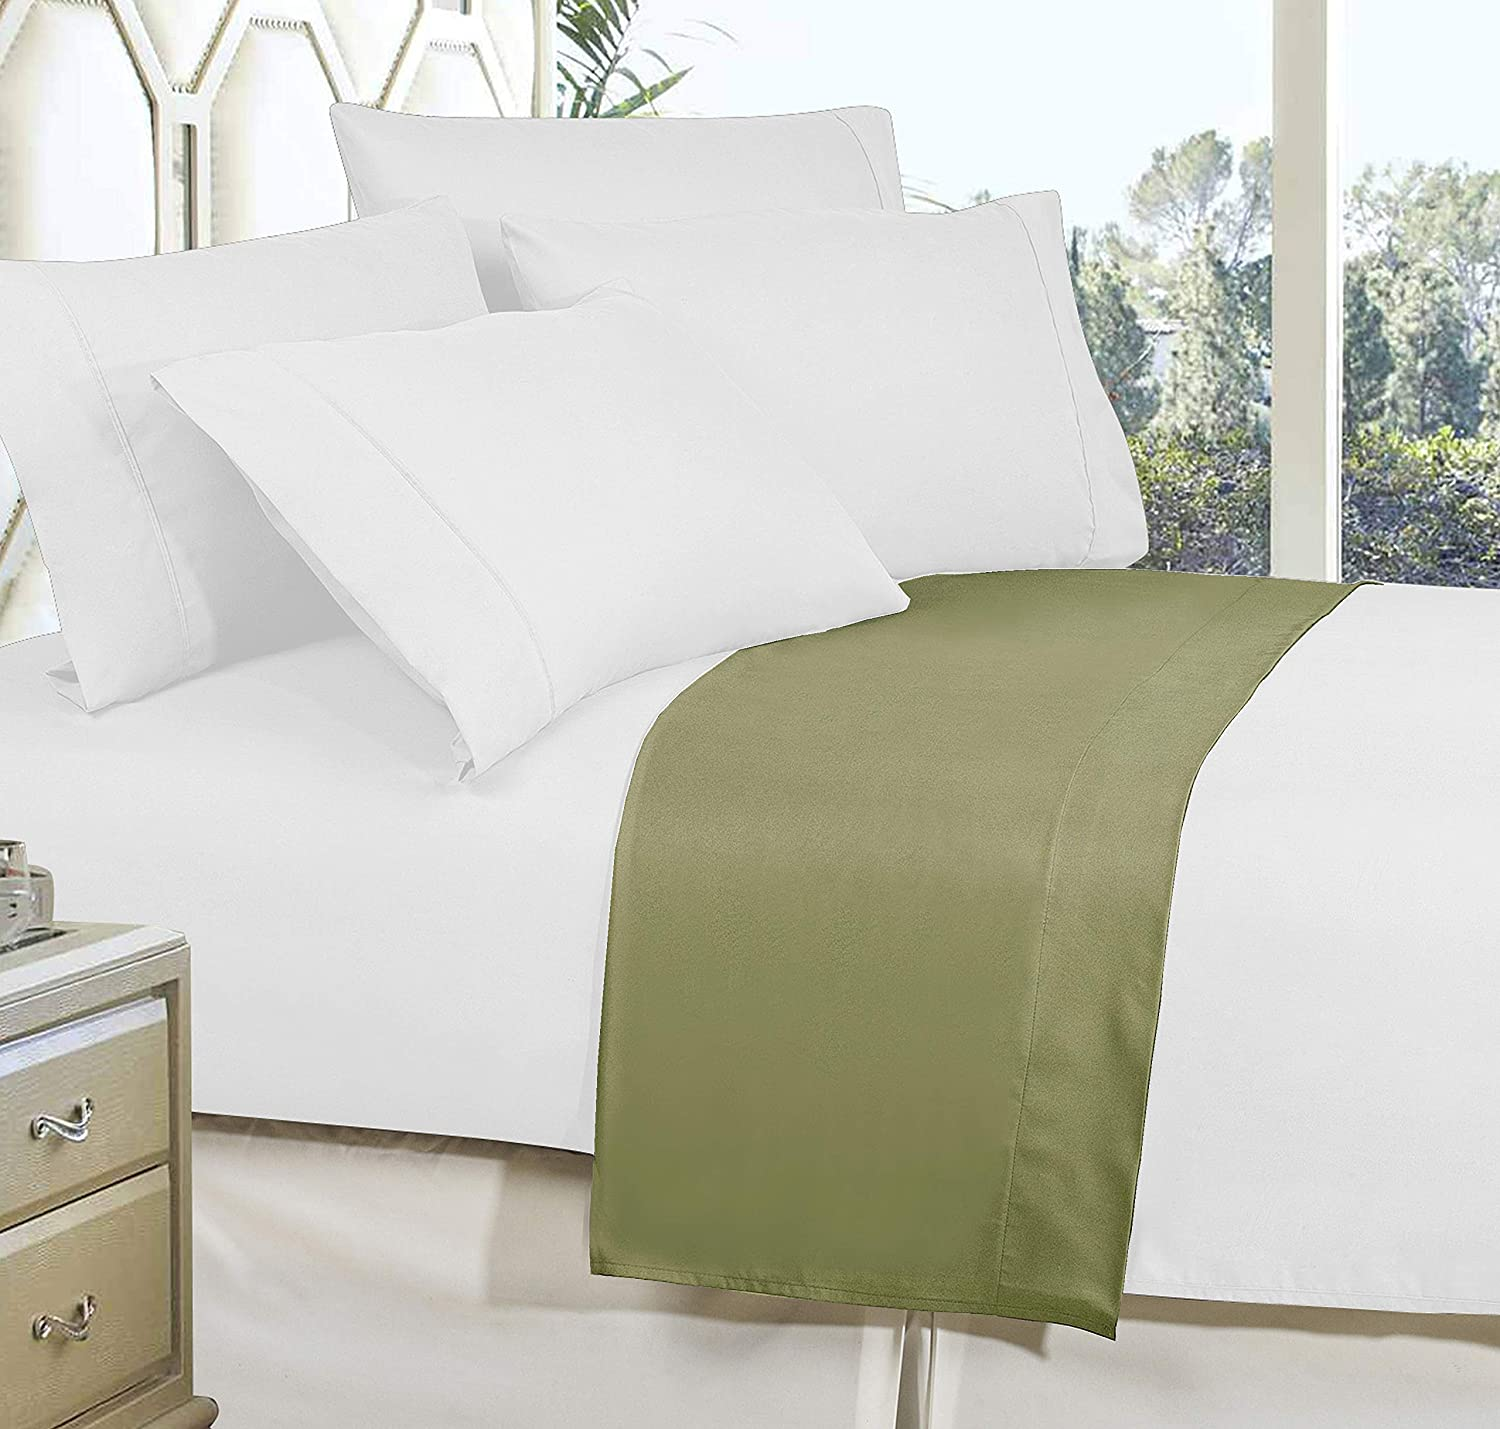 Luxury and Softest 1500 Thread Count Egyptian Quality Bedding Flat Sheet Stain-Resistant 100/% Hypoallergenic Wrinkle-Free King Elegant Comfort Premium Hotel 1-Piece Sage-Green